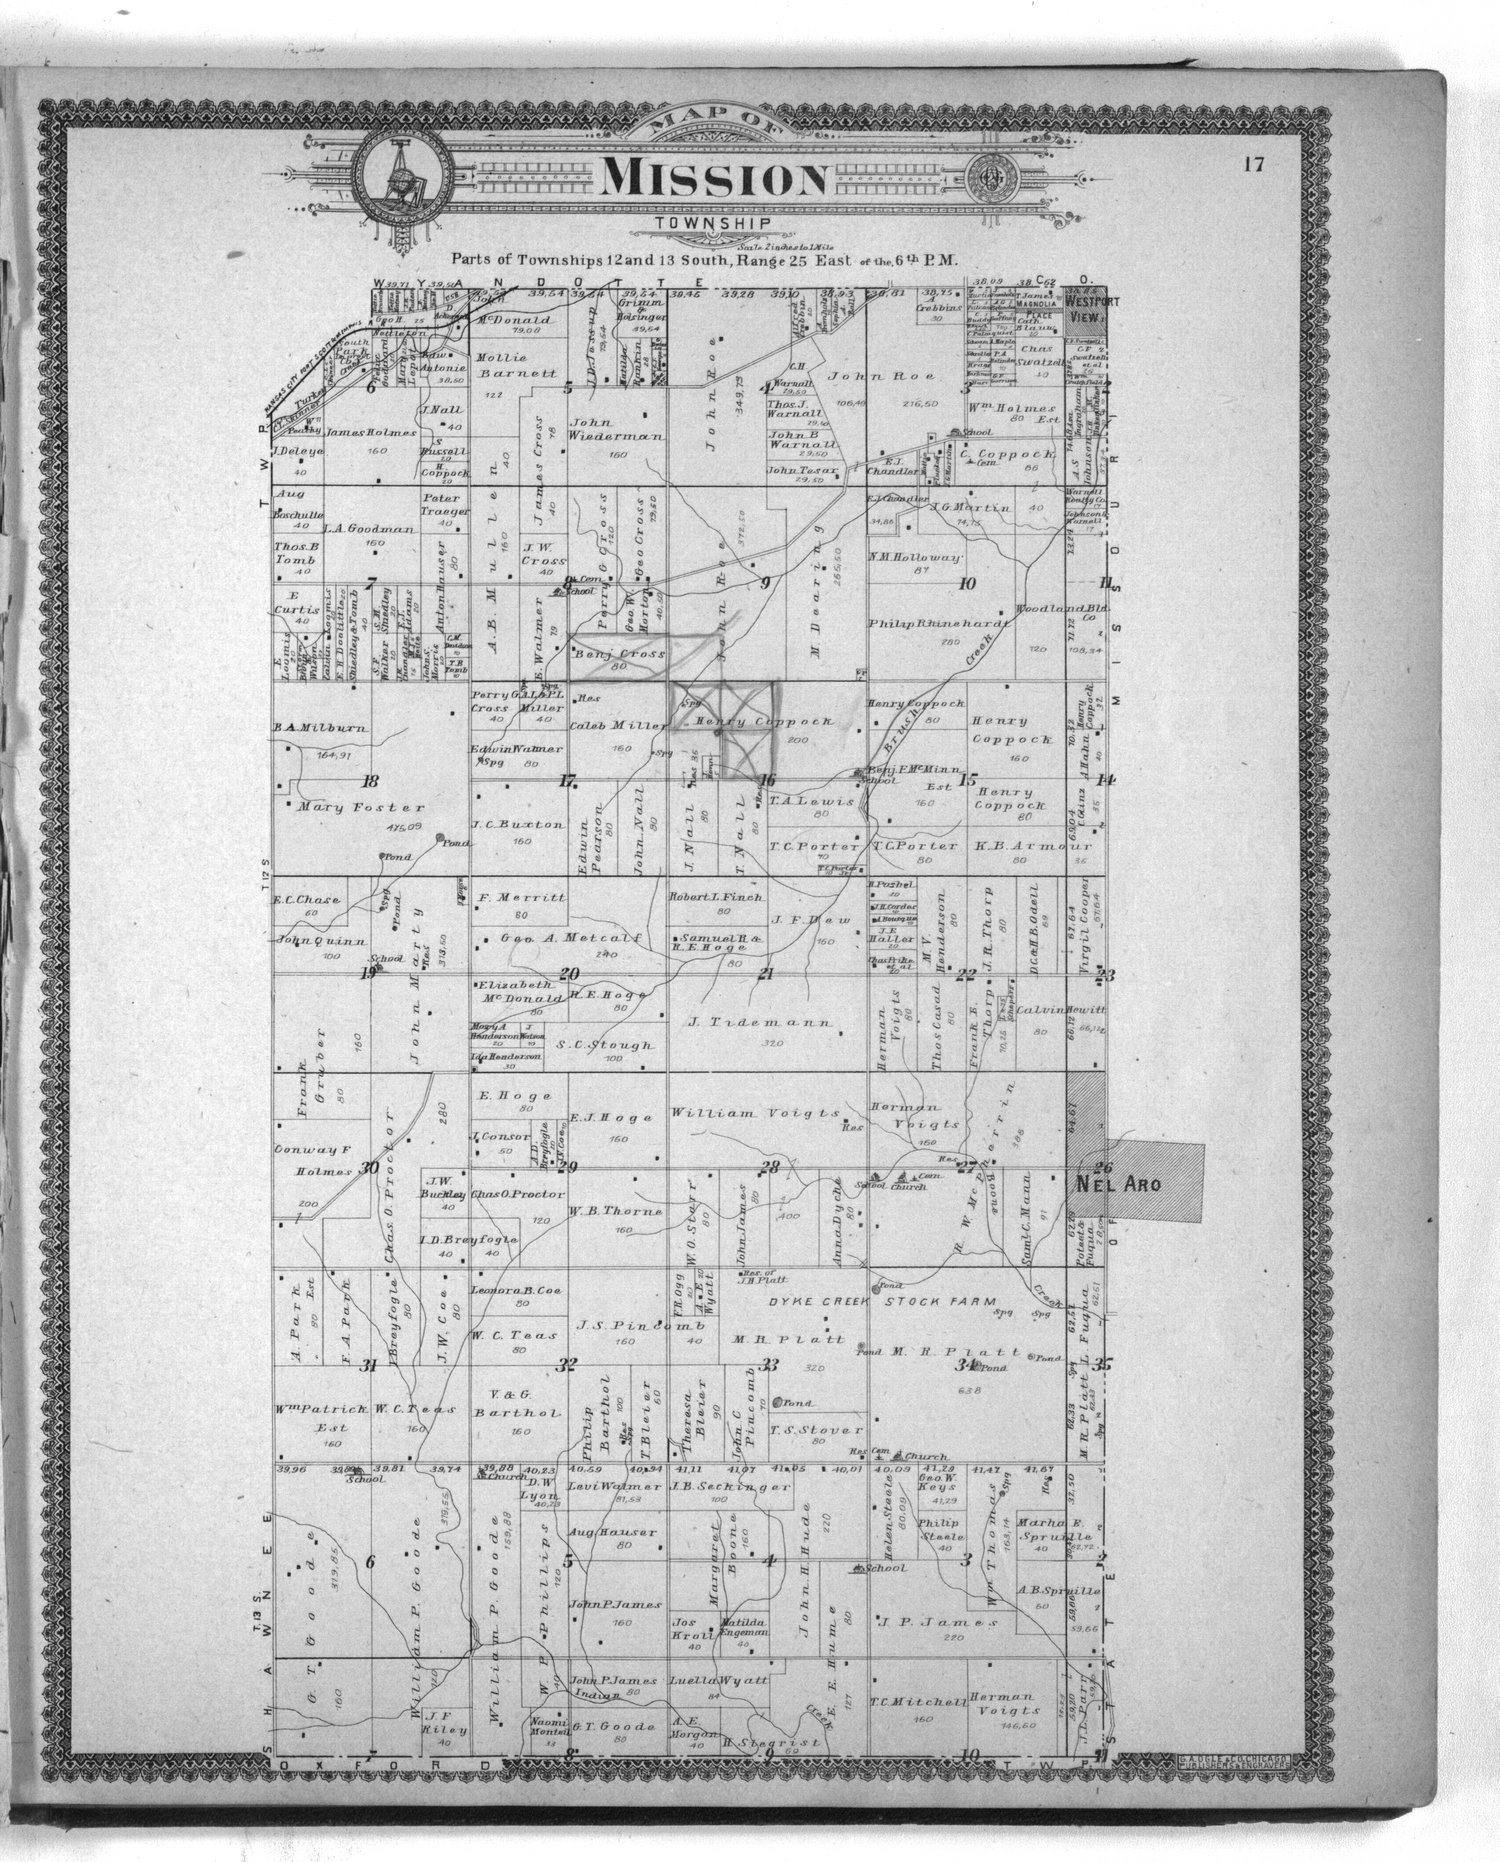 Standard atlas of Johnson County, Kansas - 17